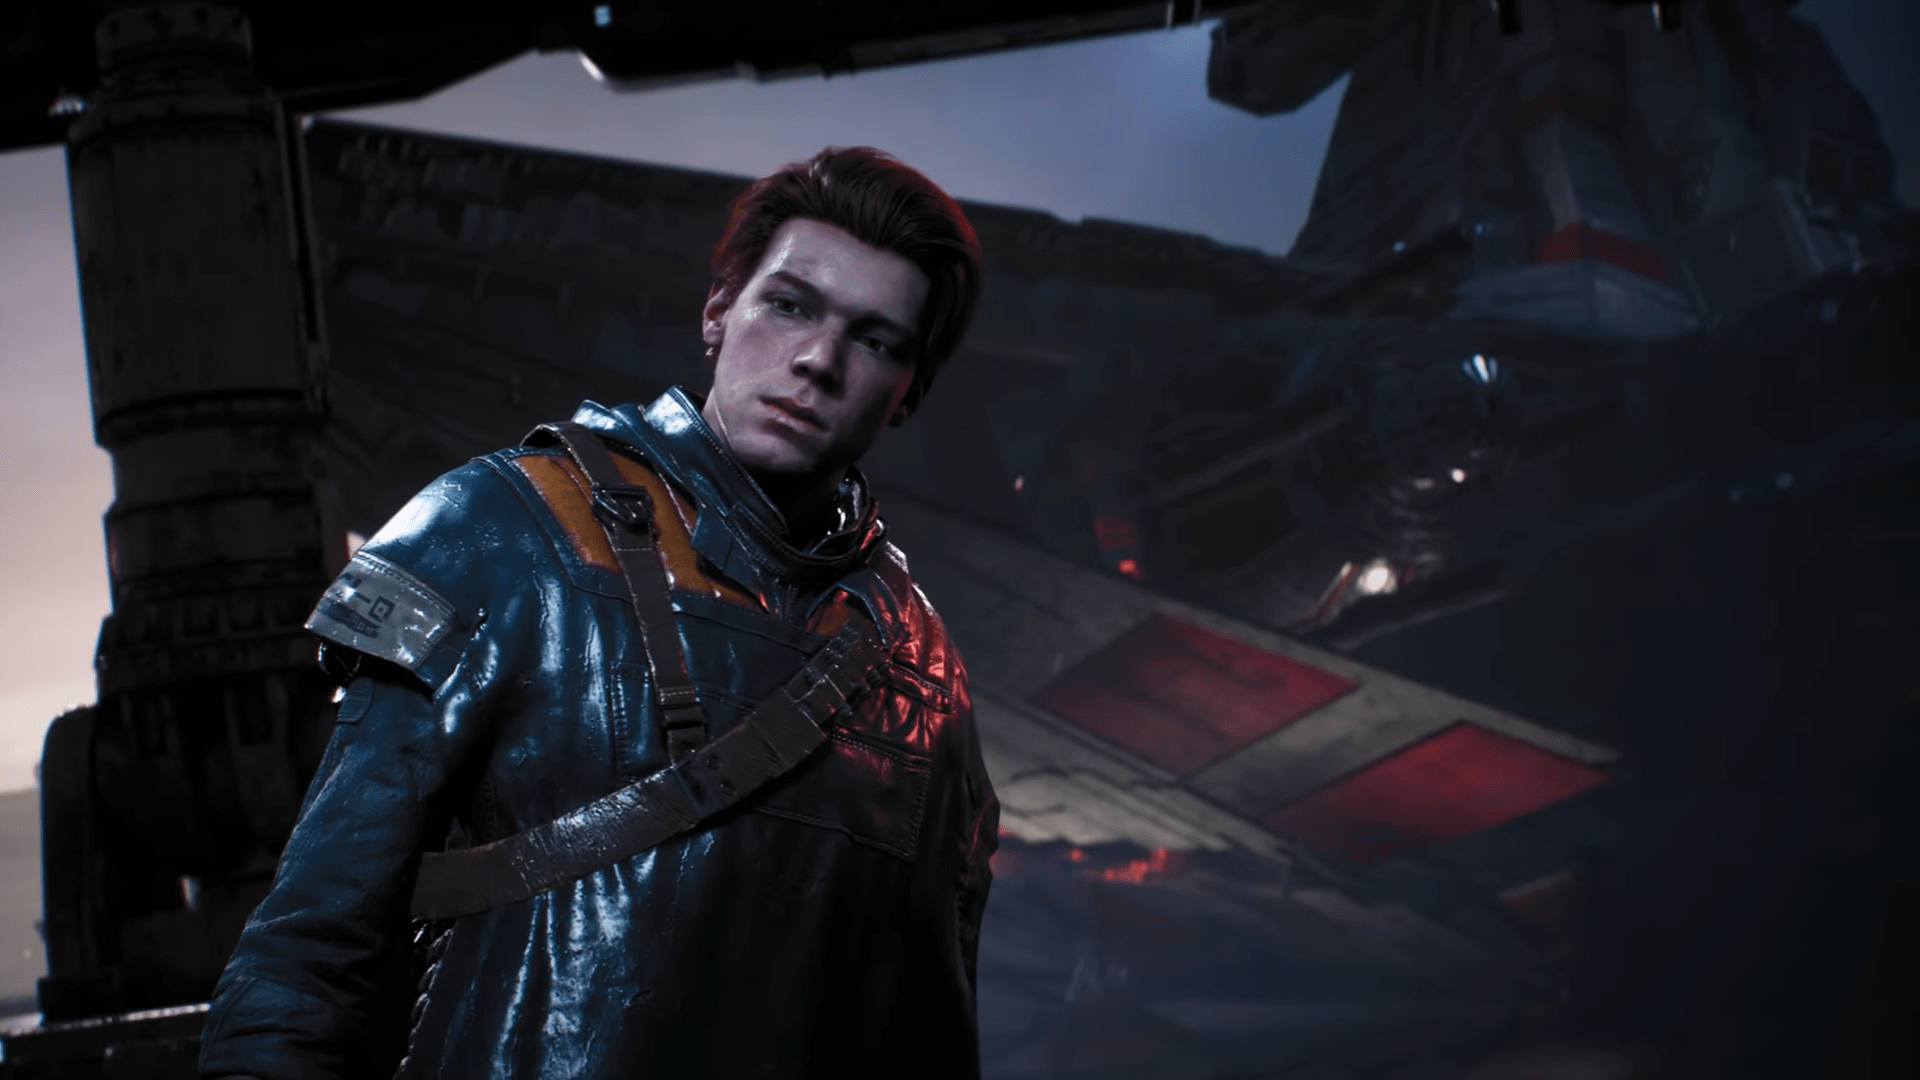 Star Wars Jedi: Fallen Order Review Embargo Doesn't Lift Until The Game Launches, Leaving Many Concerned